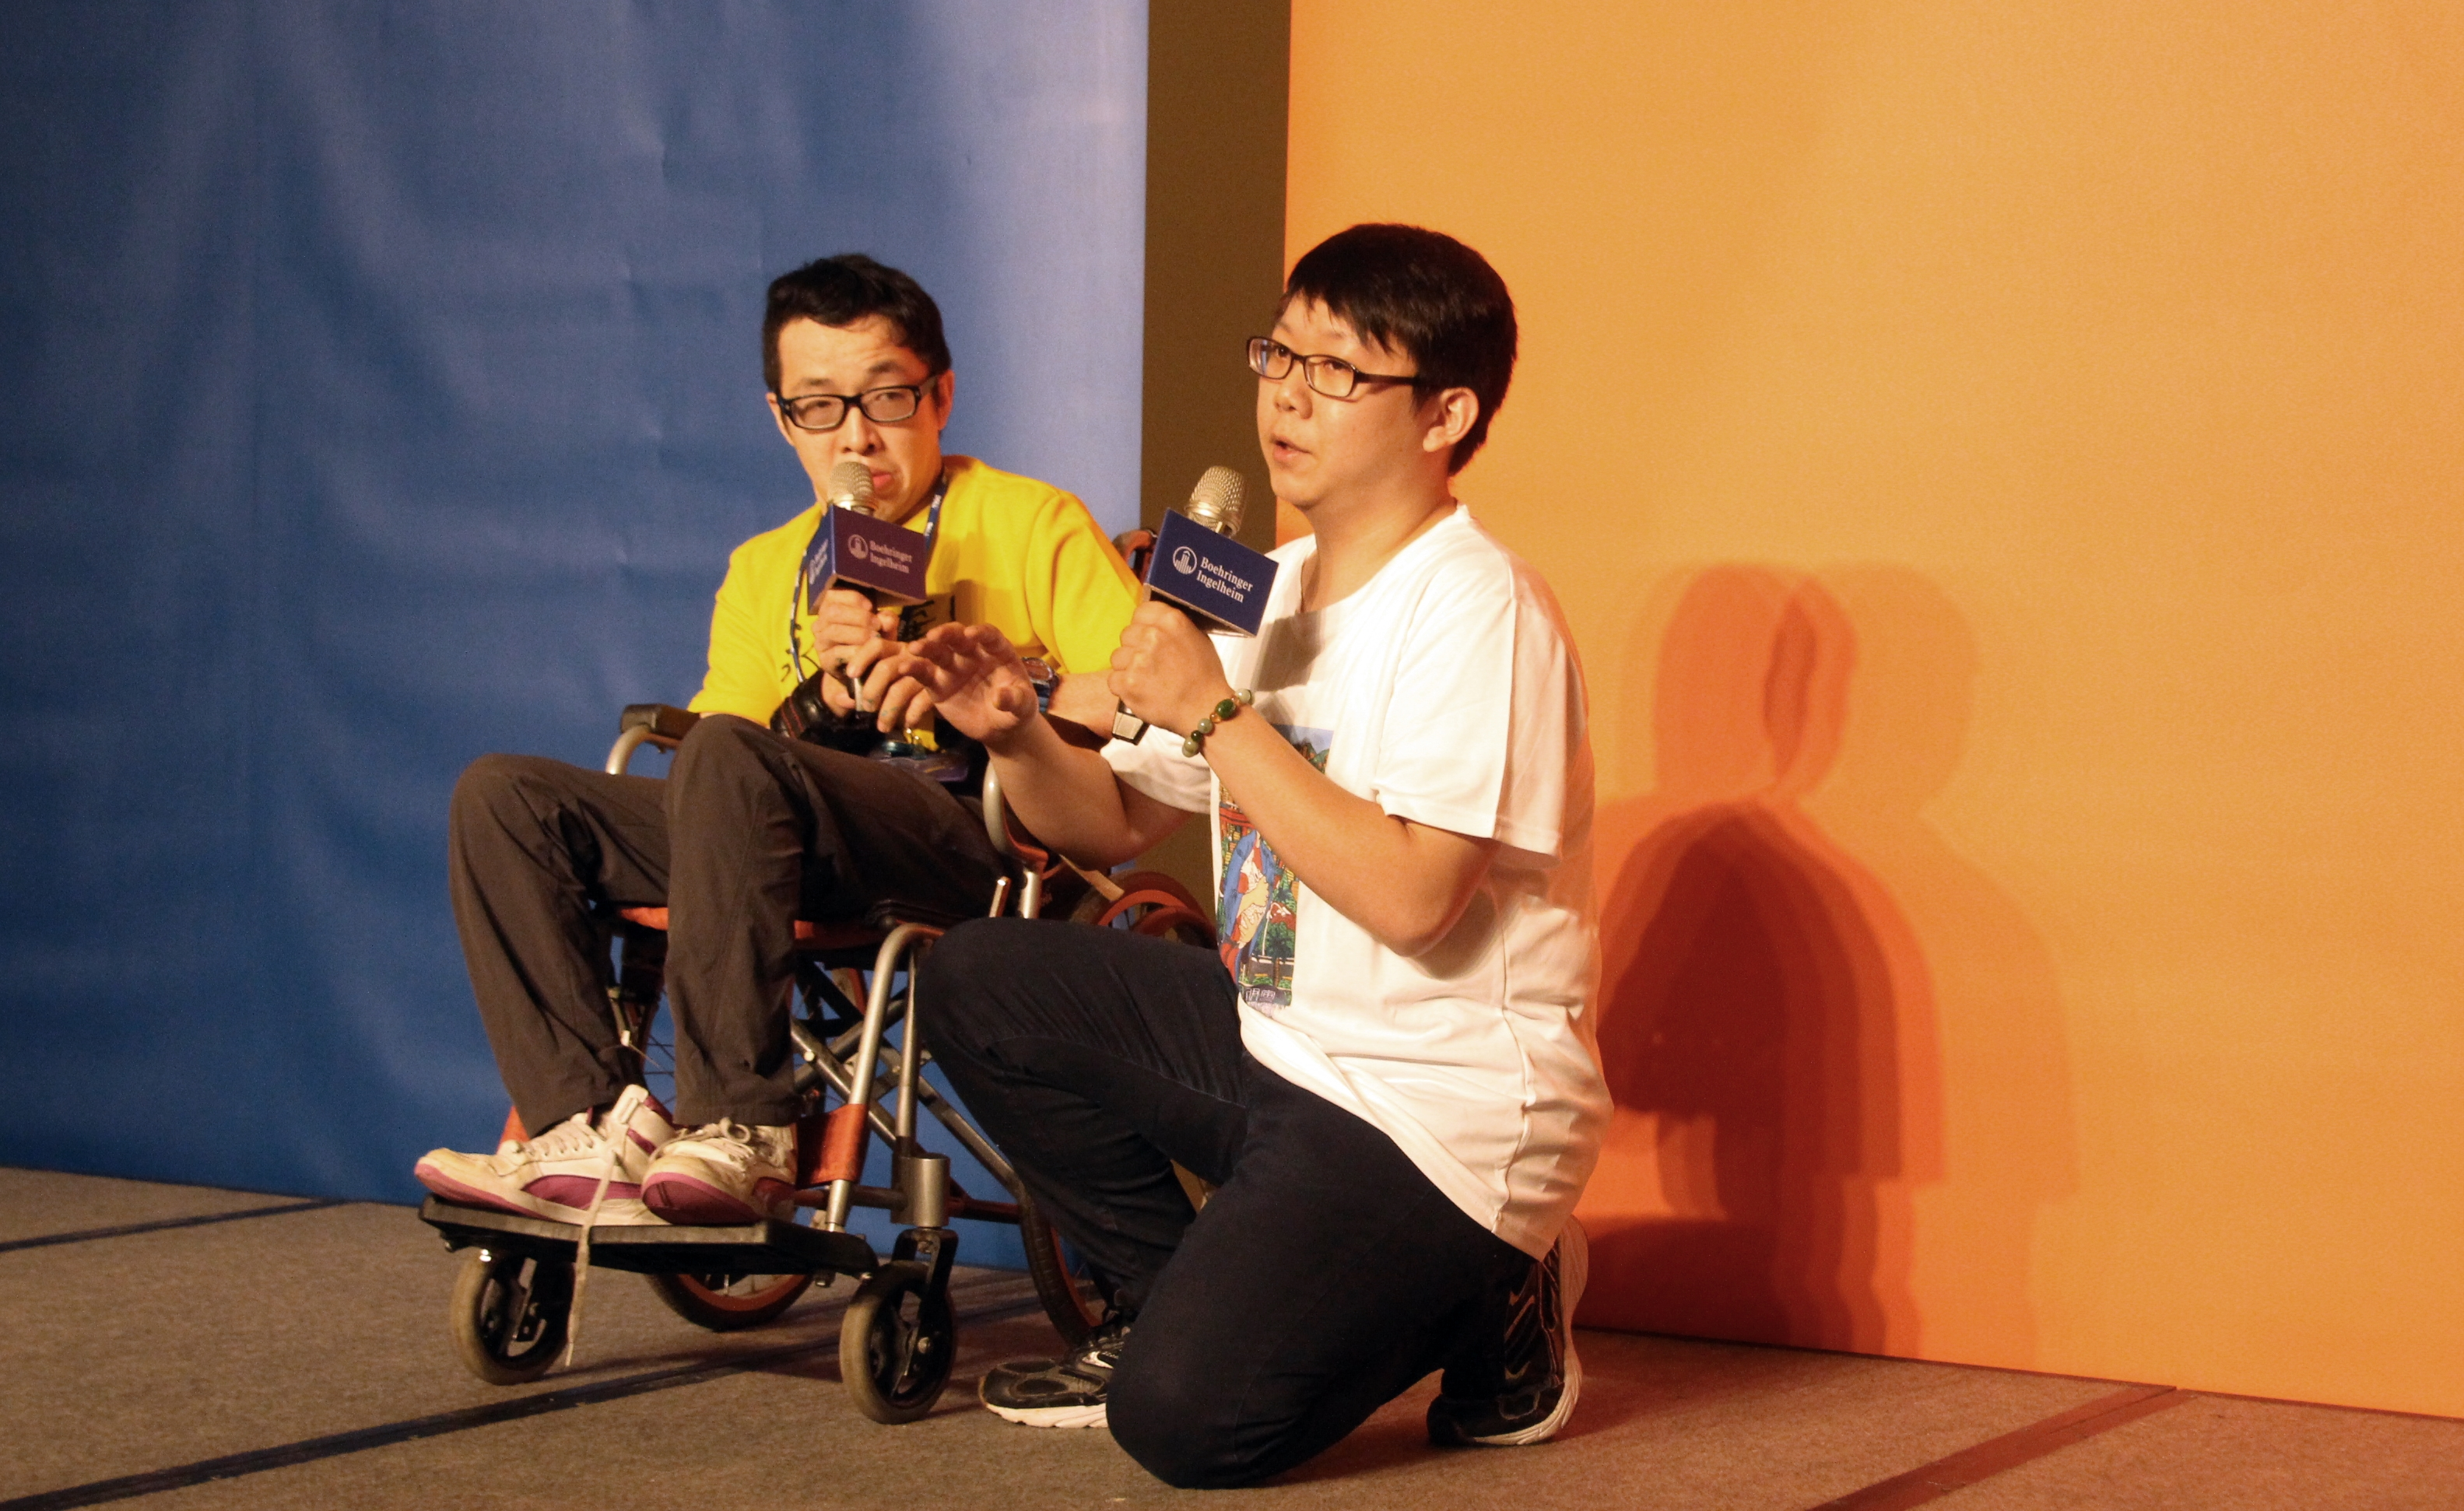 Disability Artist Duan-Zheng (left) happily sharing his thoughts on the event and his experience creating art